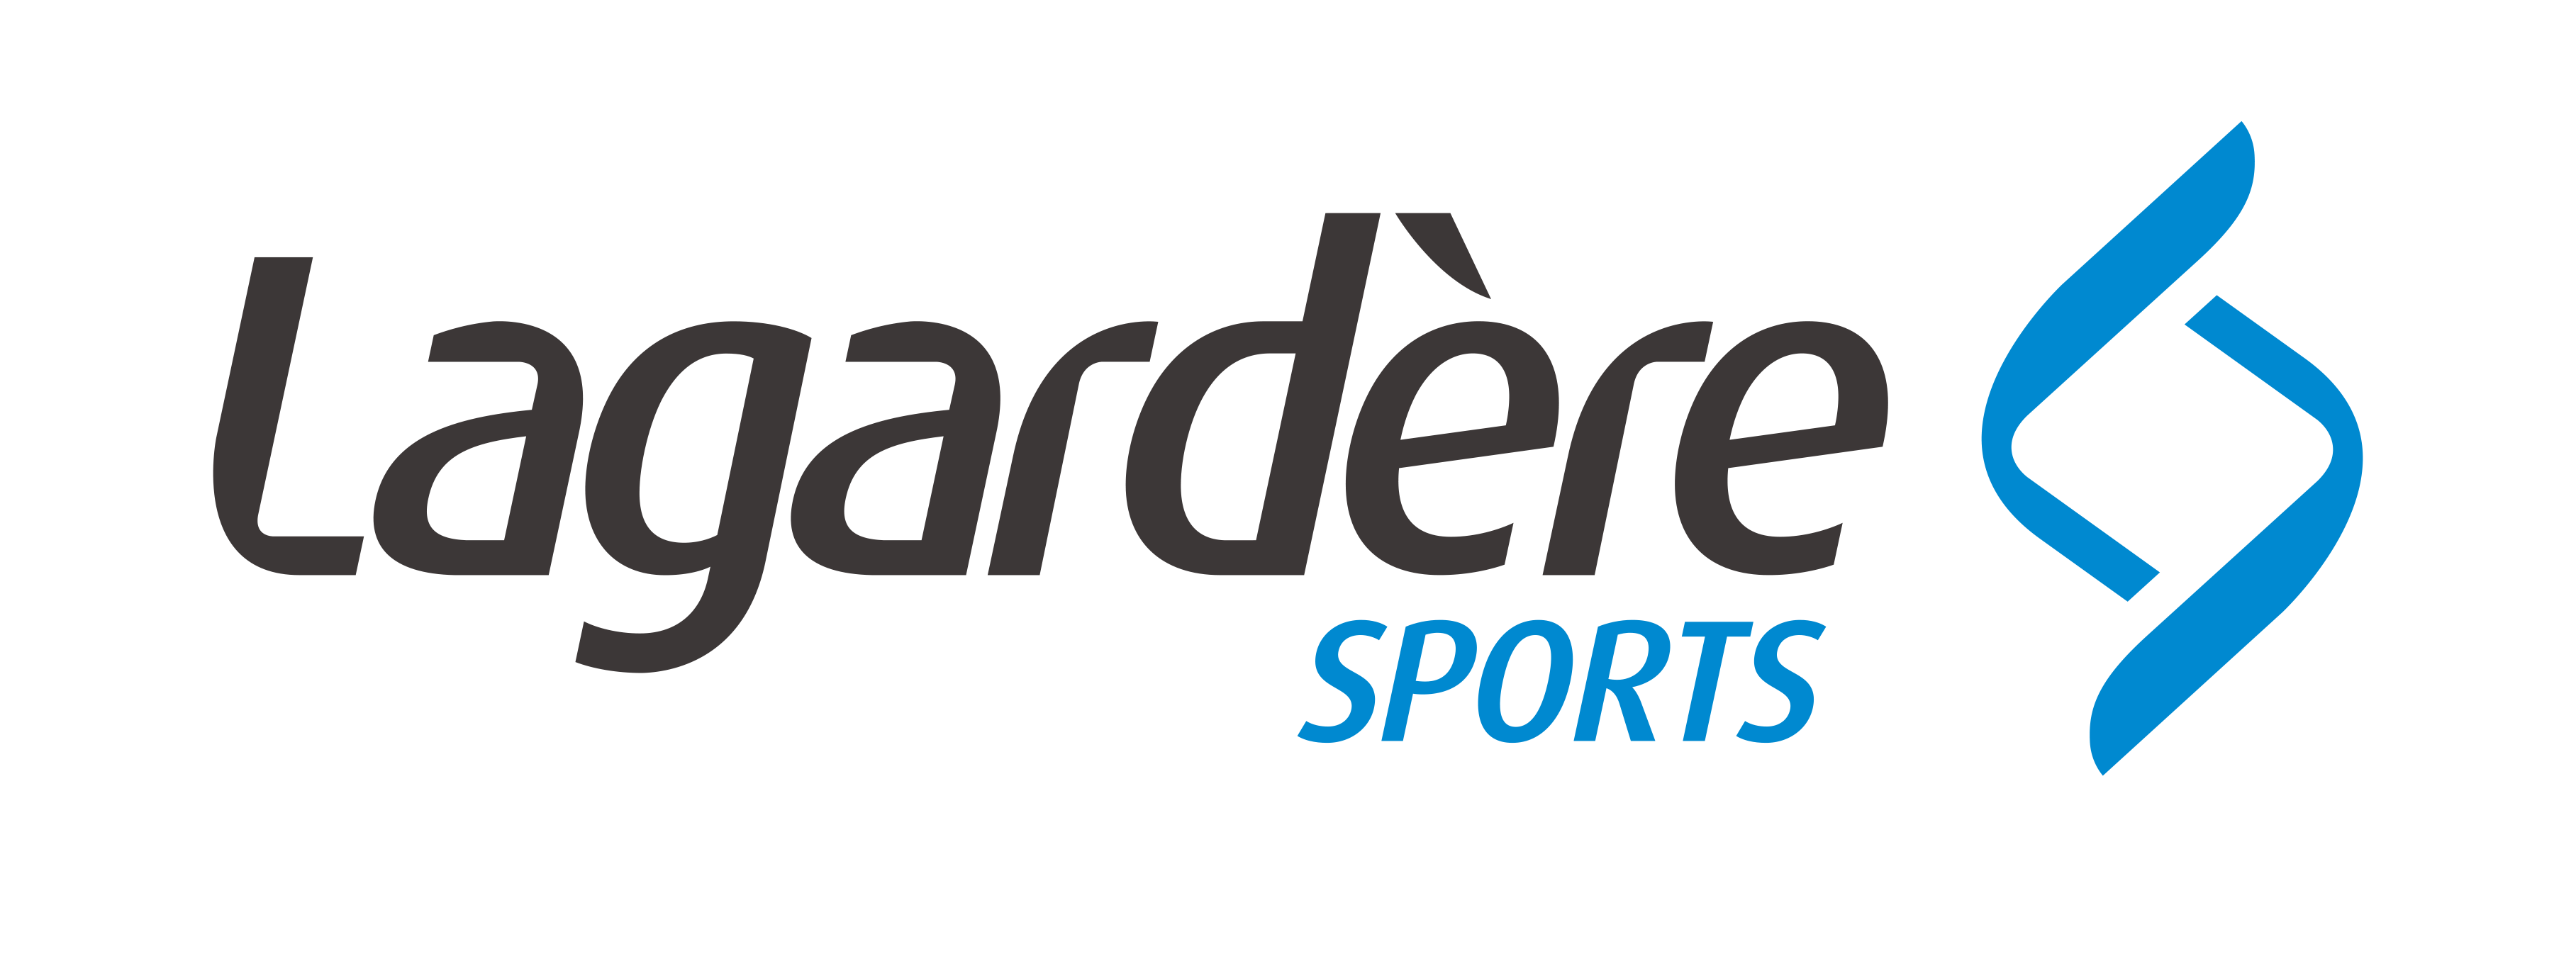 logo-lagardère-sports